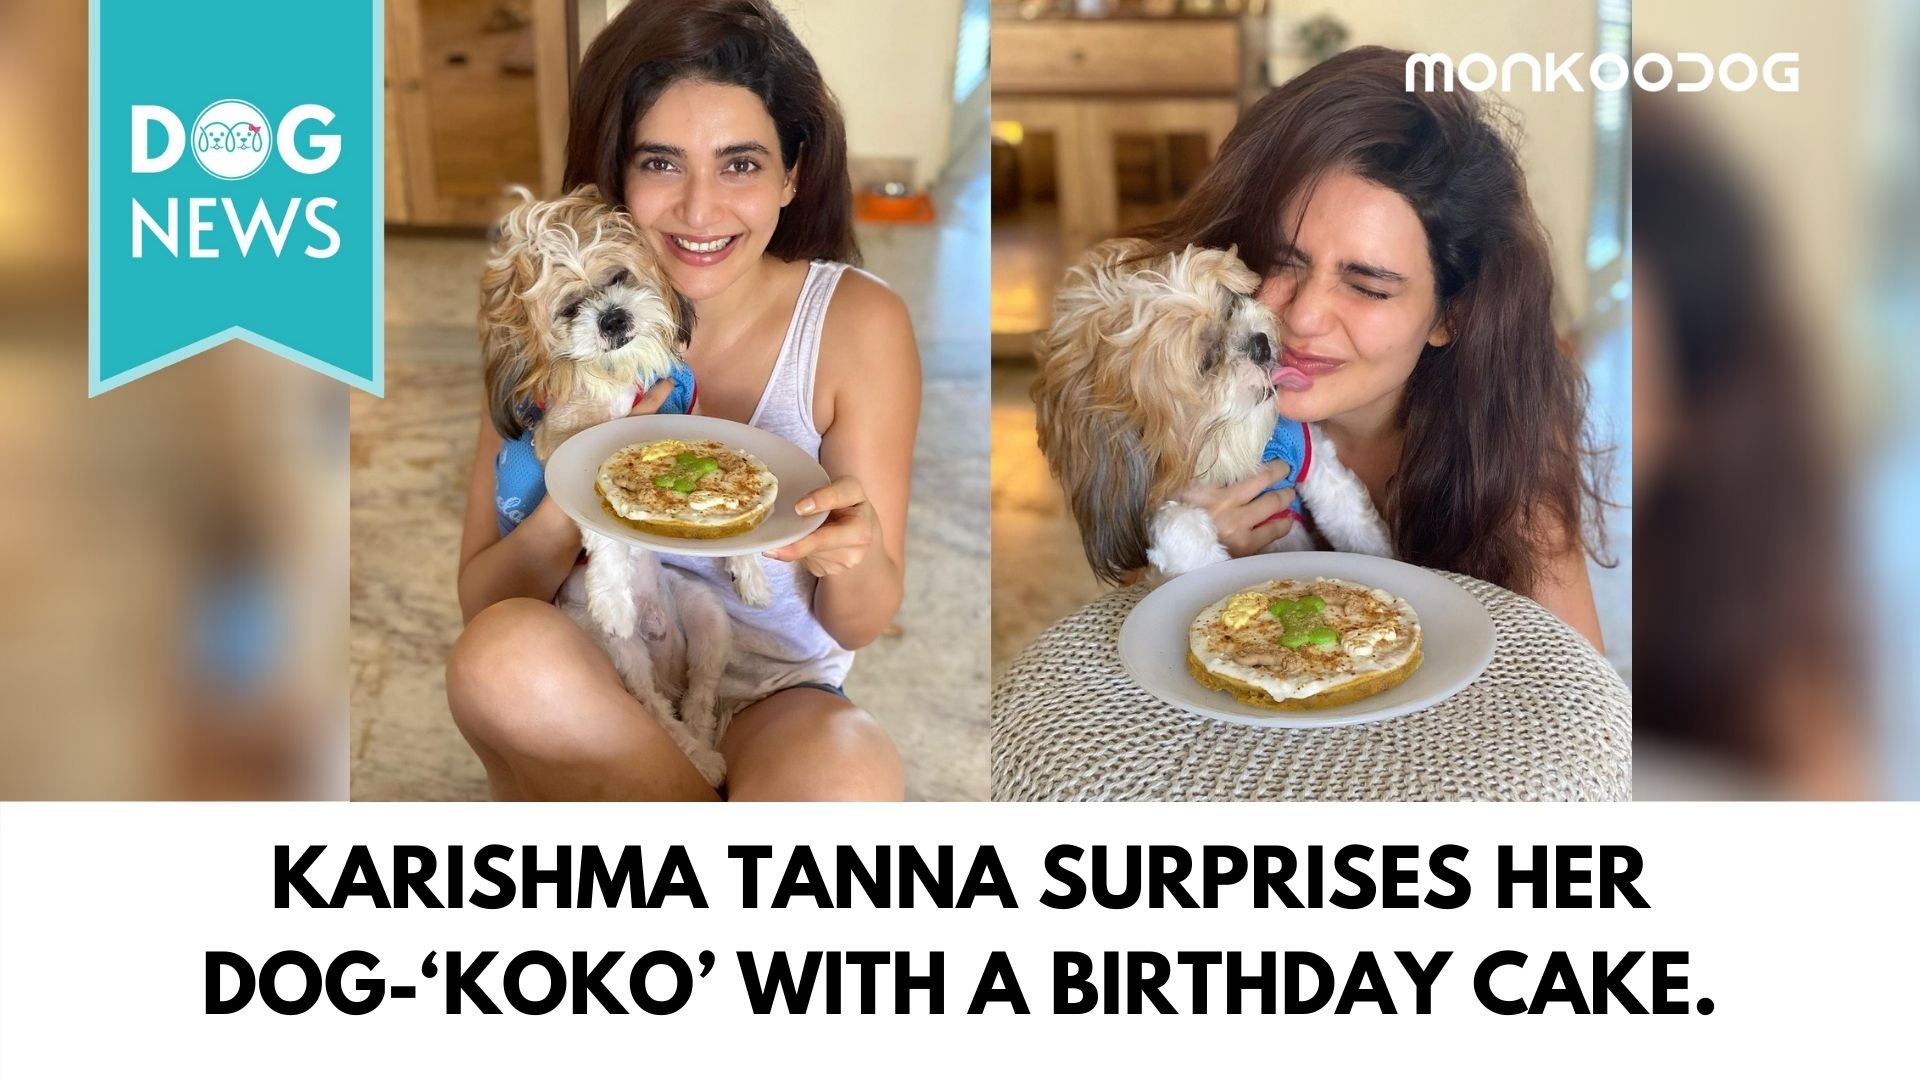 Karishma Tanna surprises her cute little dog-'koko' with a yummy cake on his birthday.